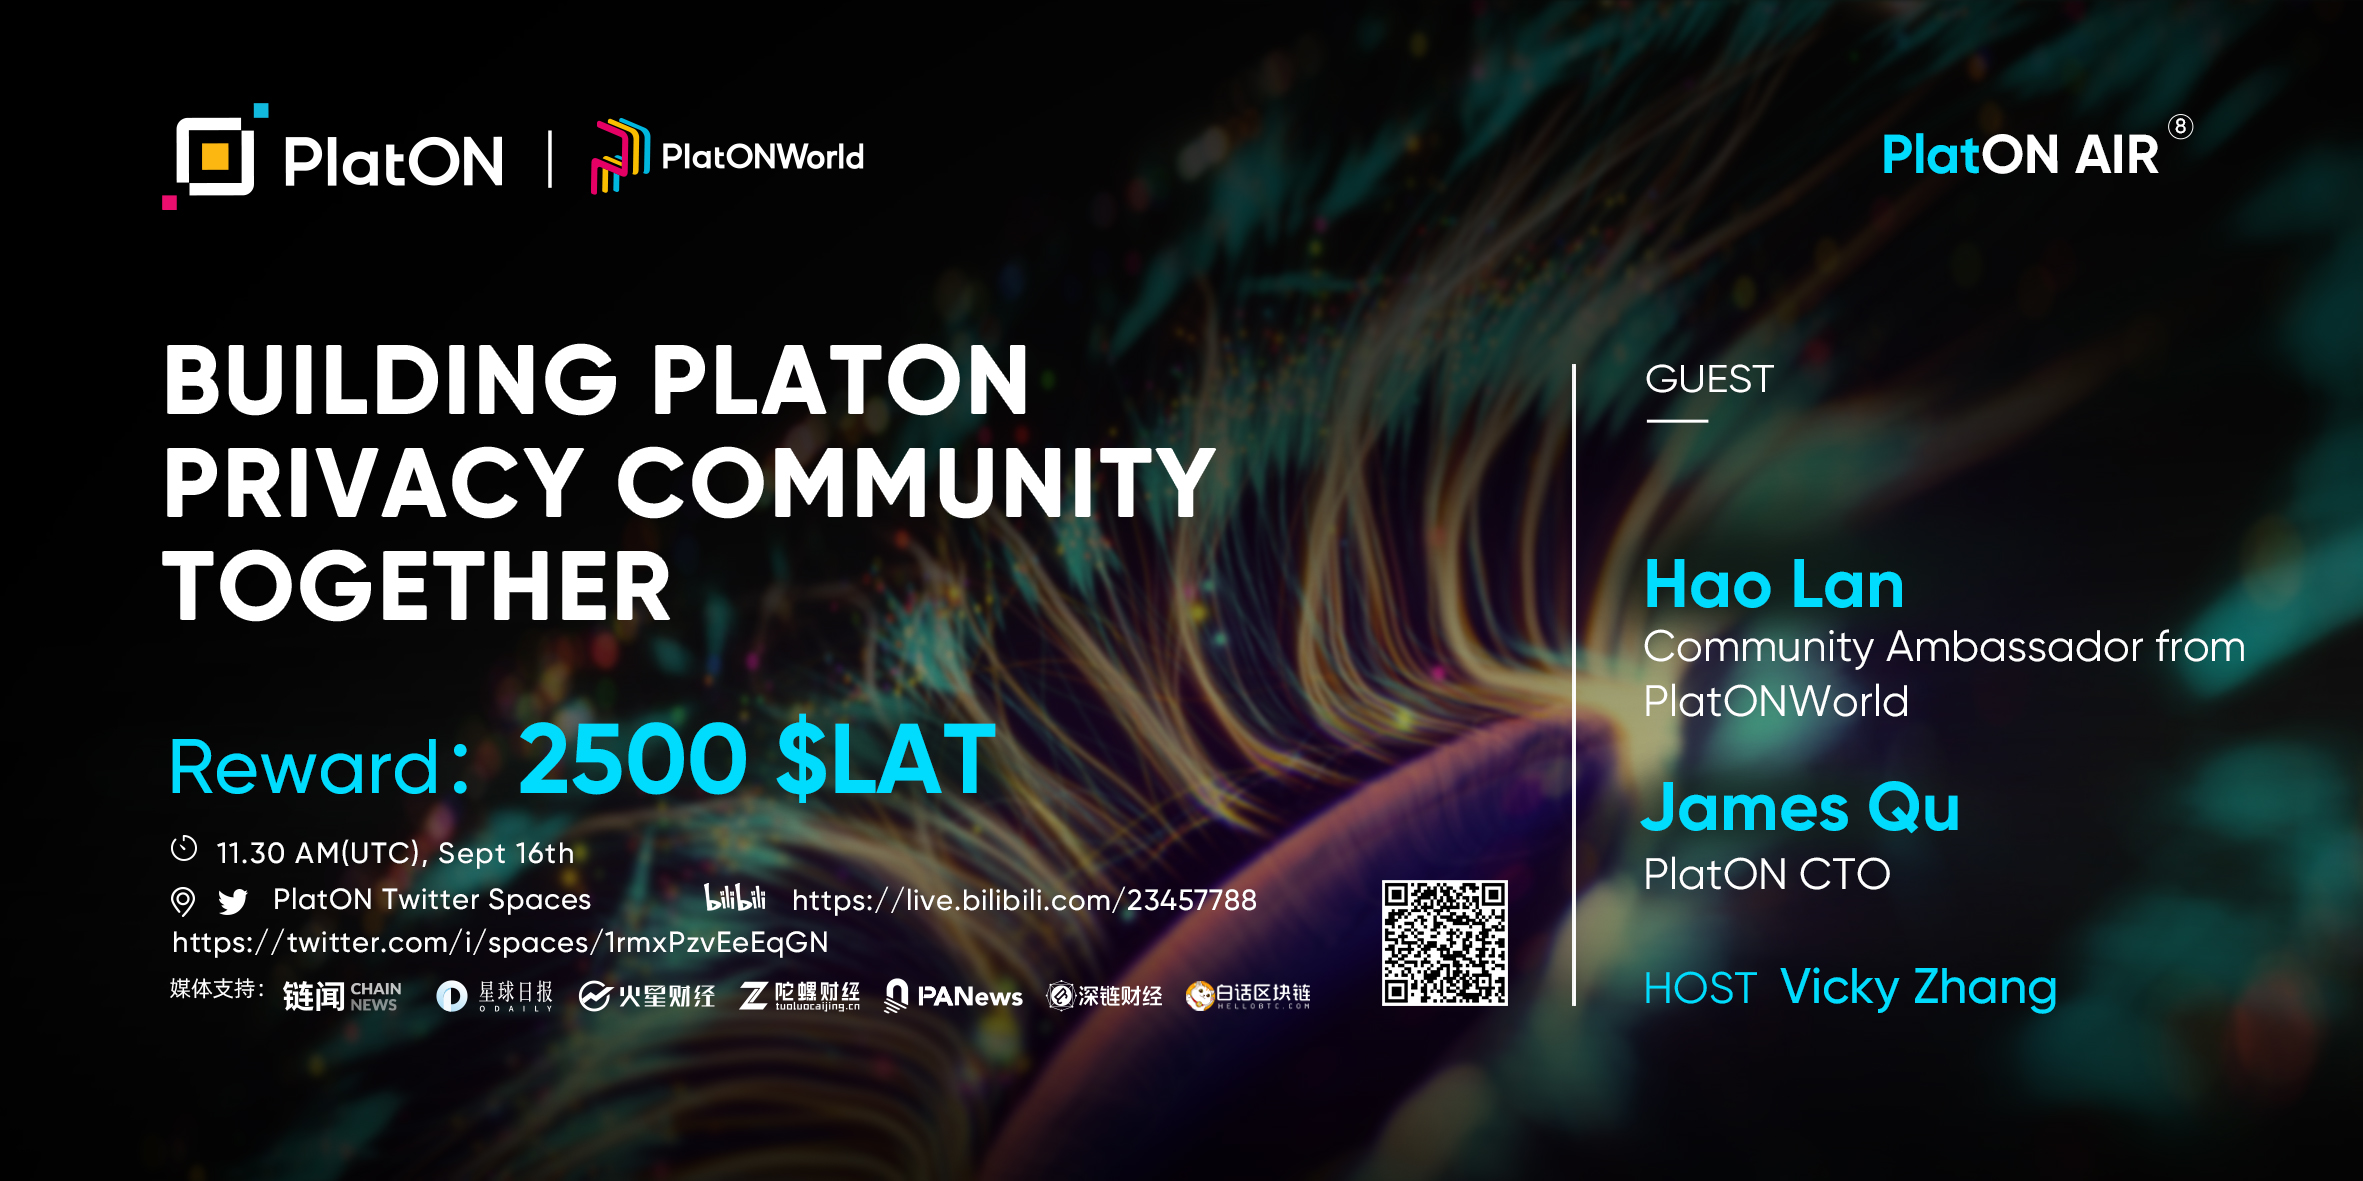 [REPLAY] PlatON AIR#8 | Building PlatON Privacy Community Together